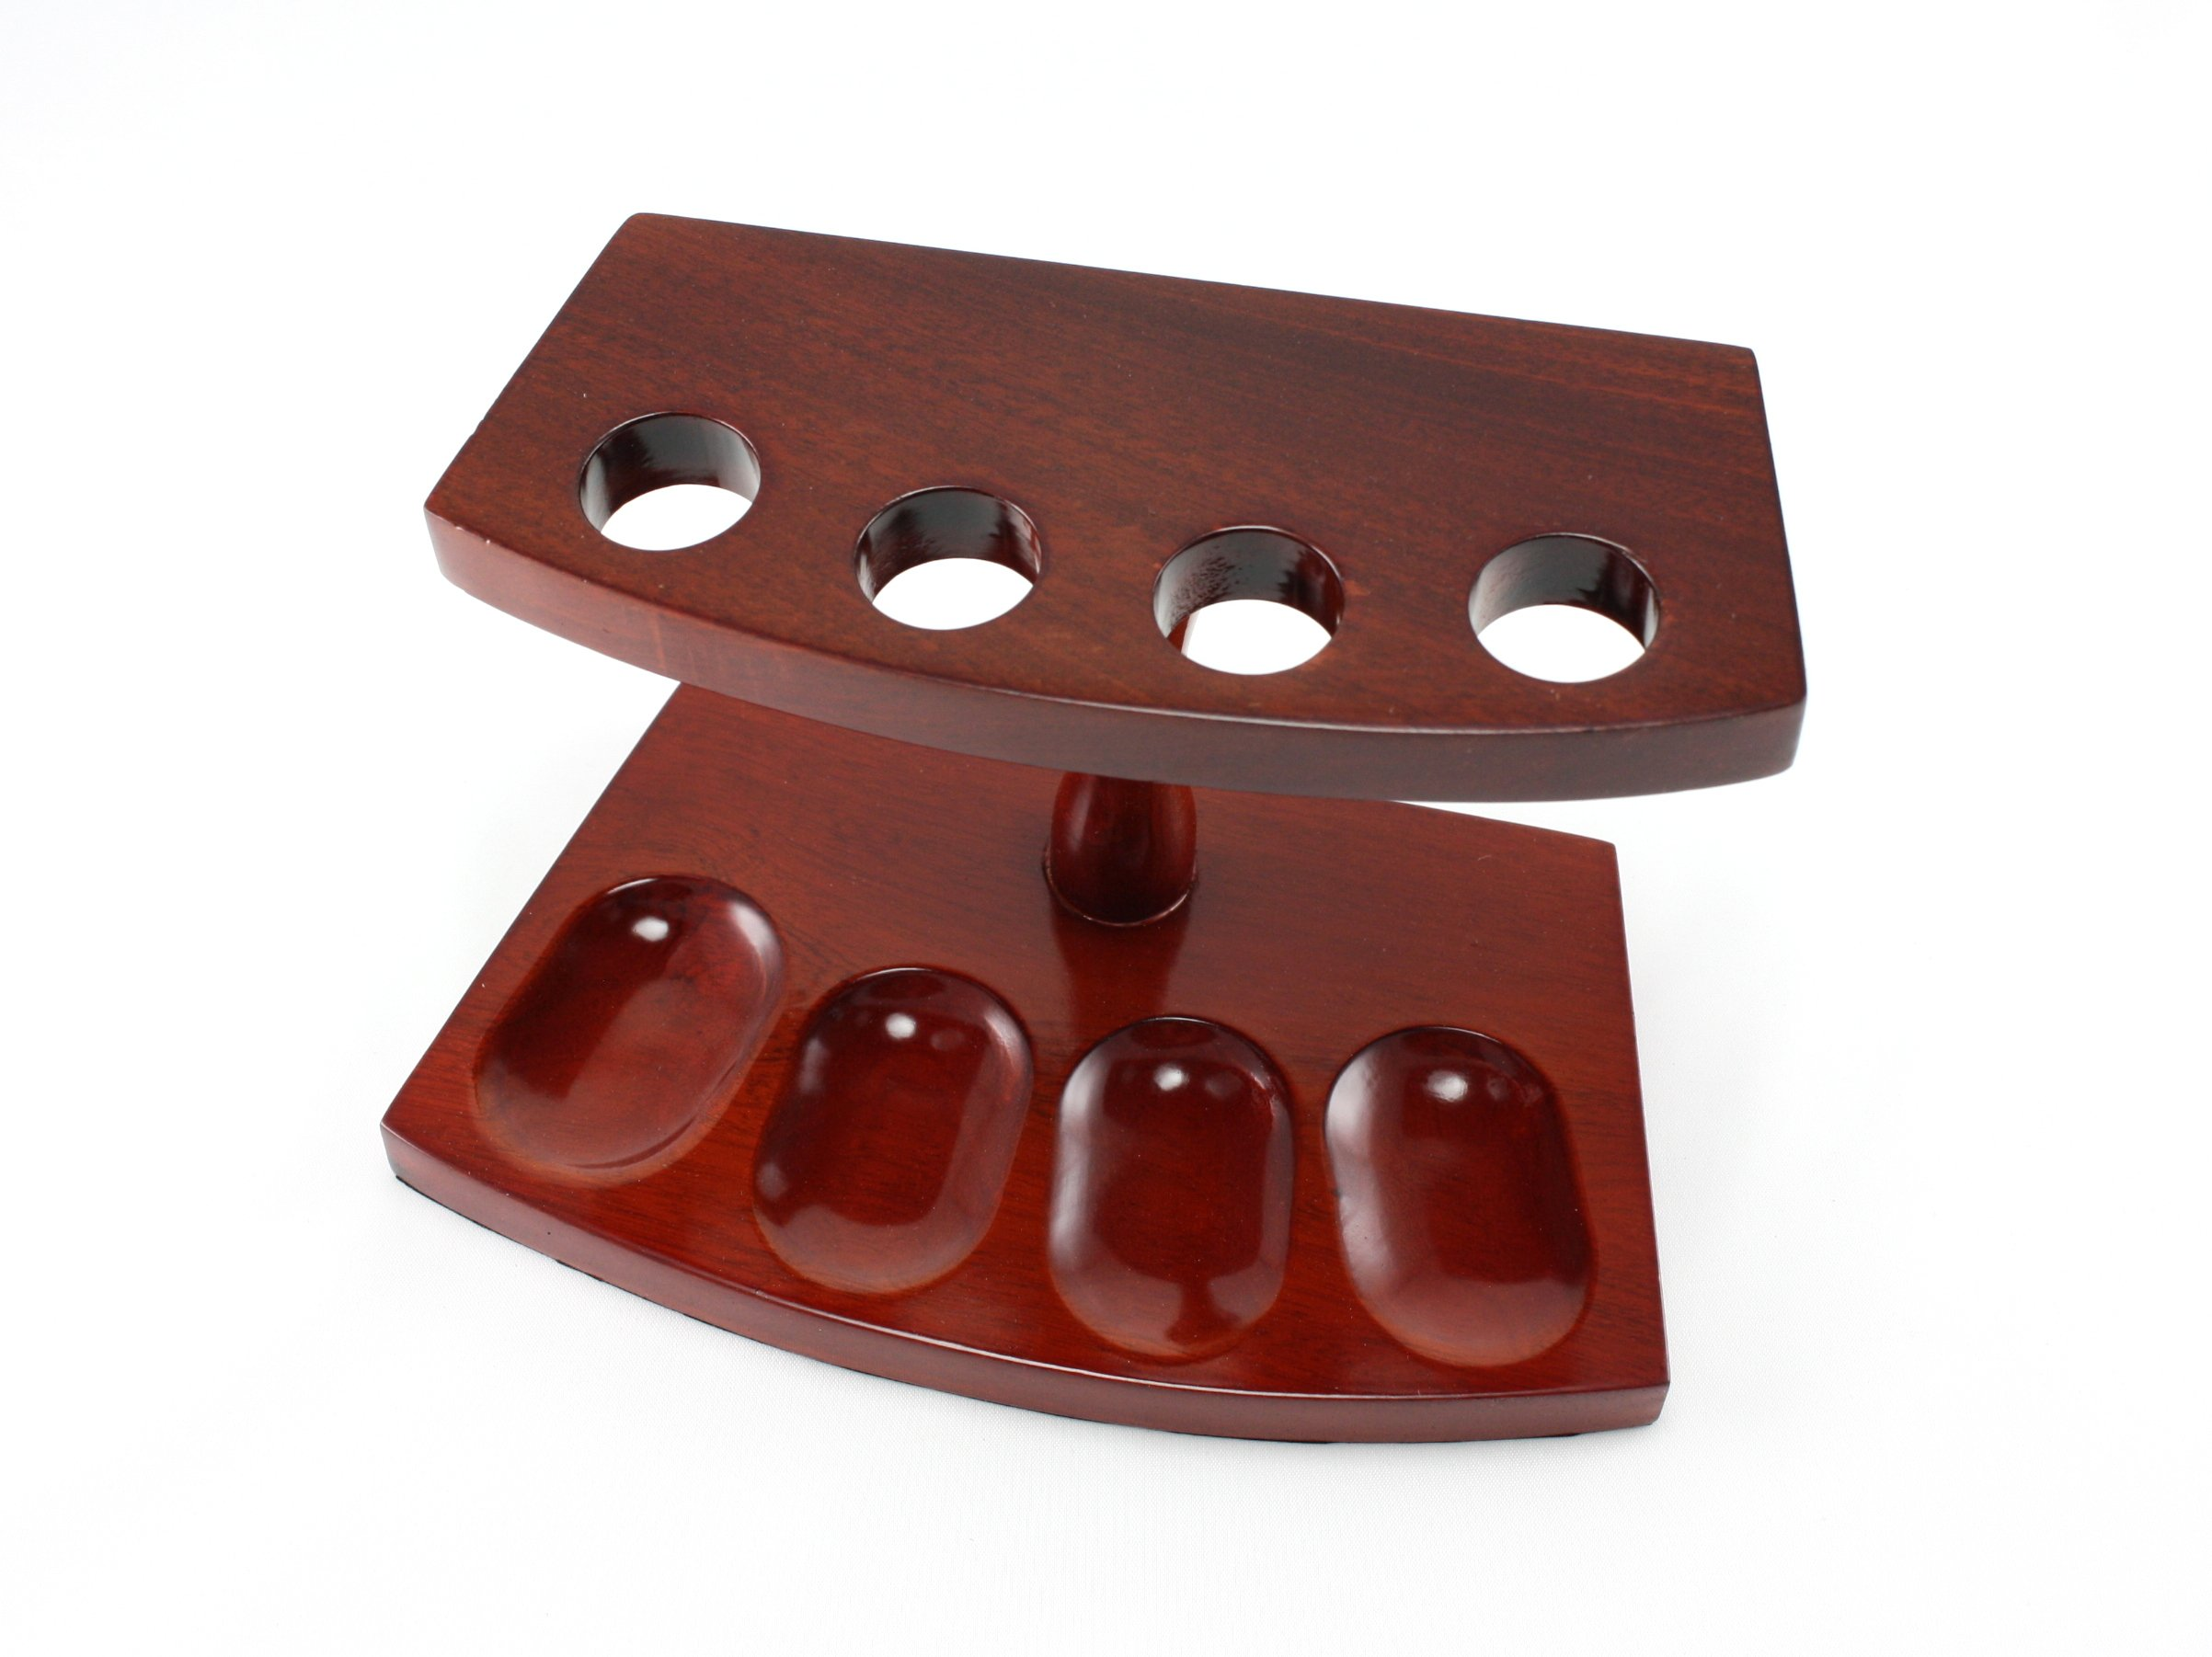 Skyway Kingston 4 Pipe Wood Tobacco Pipe Stand Rack Holder - Cherry by Skyway Products